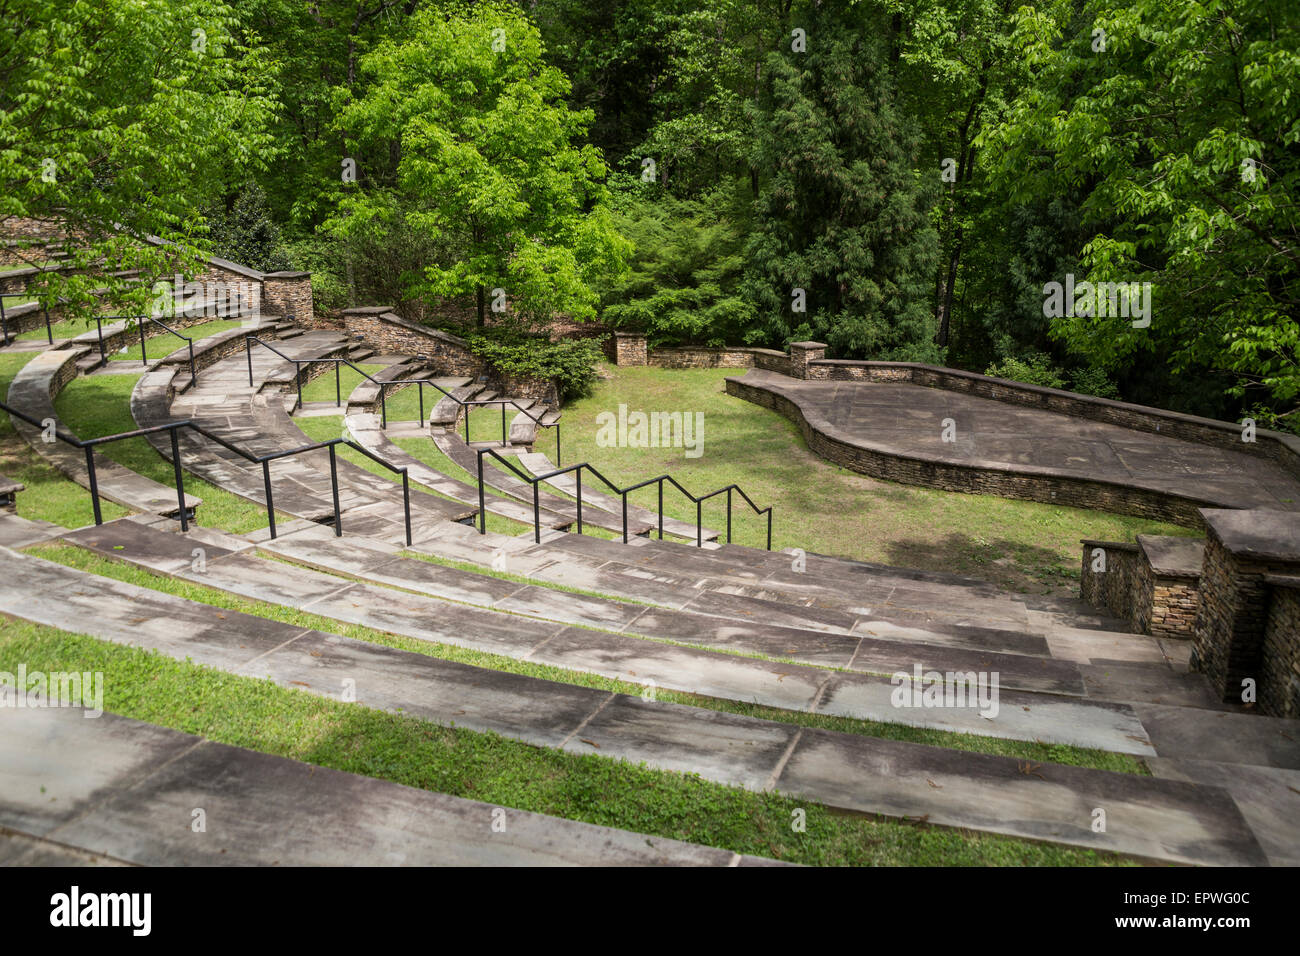 Exceptionnel Amphitheater, South Carolina Botanical Gardens, Clemson, South Carolina, USA